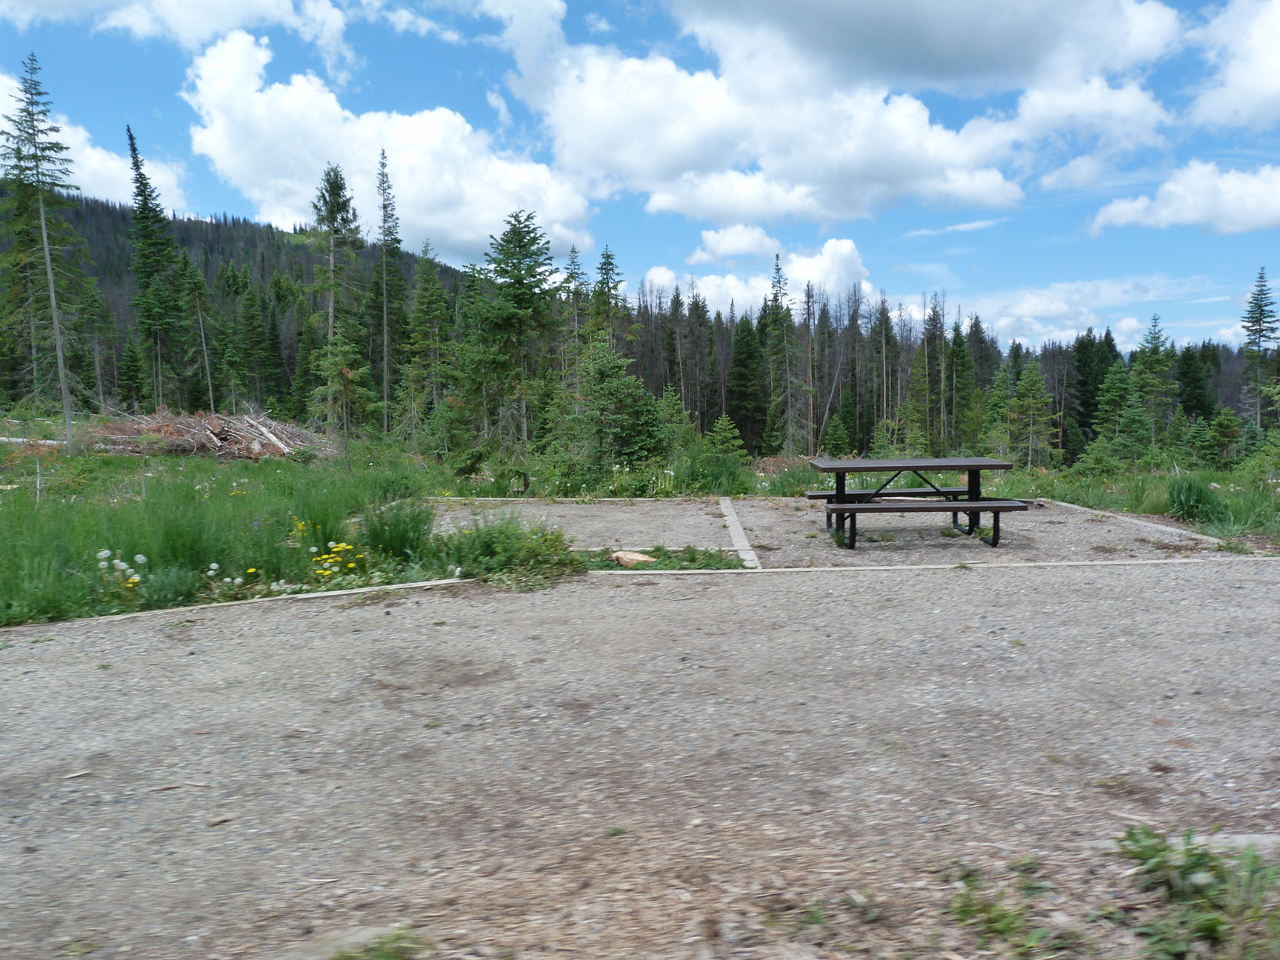 pearl-lake-state-park-campground-camping-in-forest